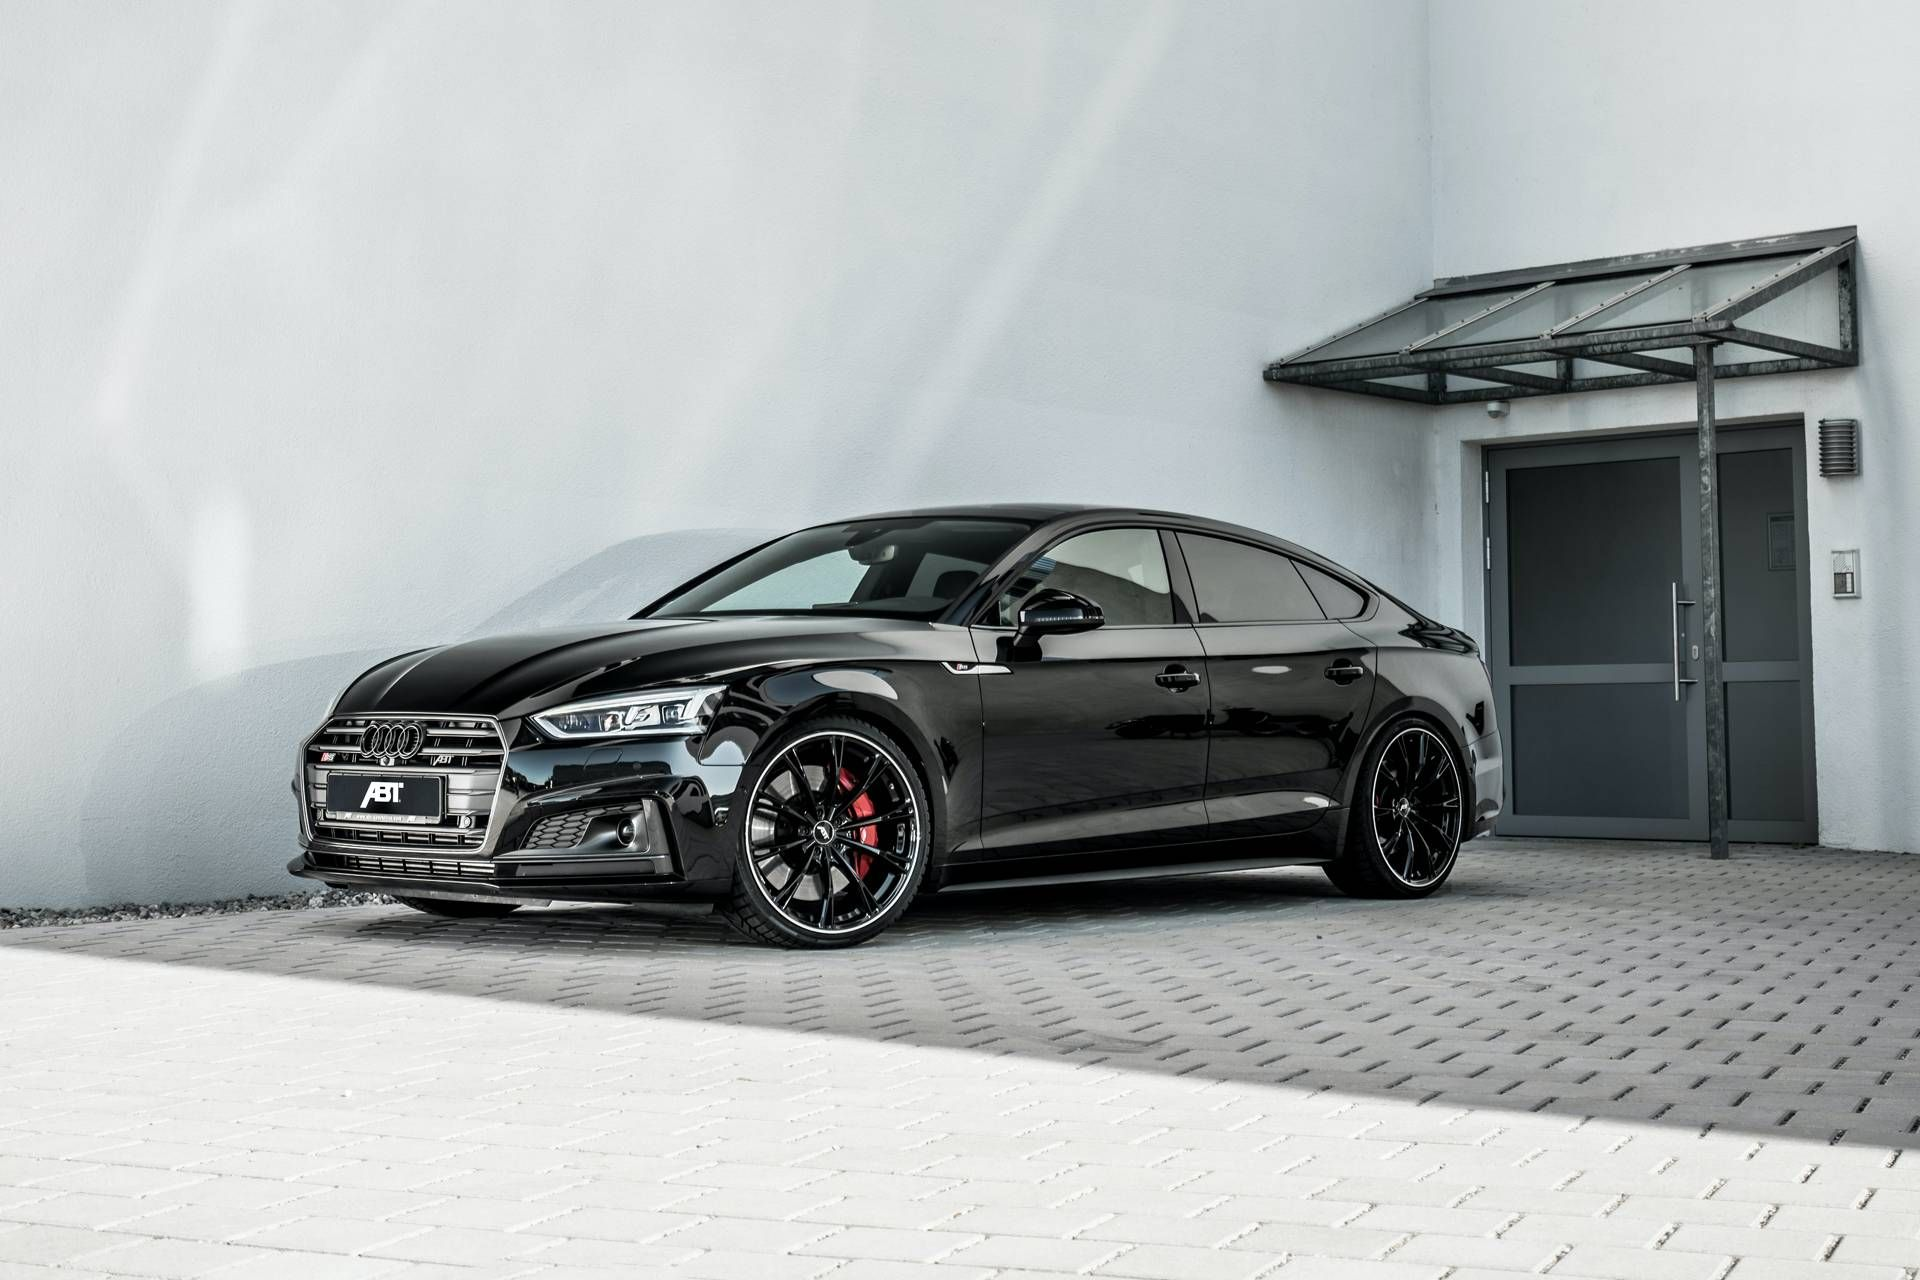 Abt Gives Europe S 2020 Audi S5 Sportback A Diesel Boost To 379 Hp Carscoops Audi S5 Sportback Audi S5 Audi